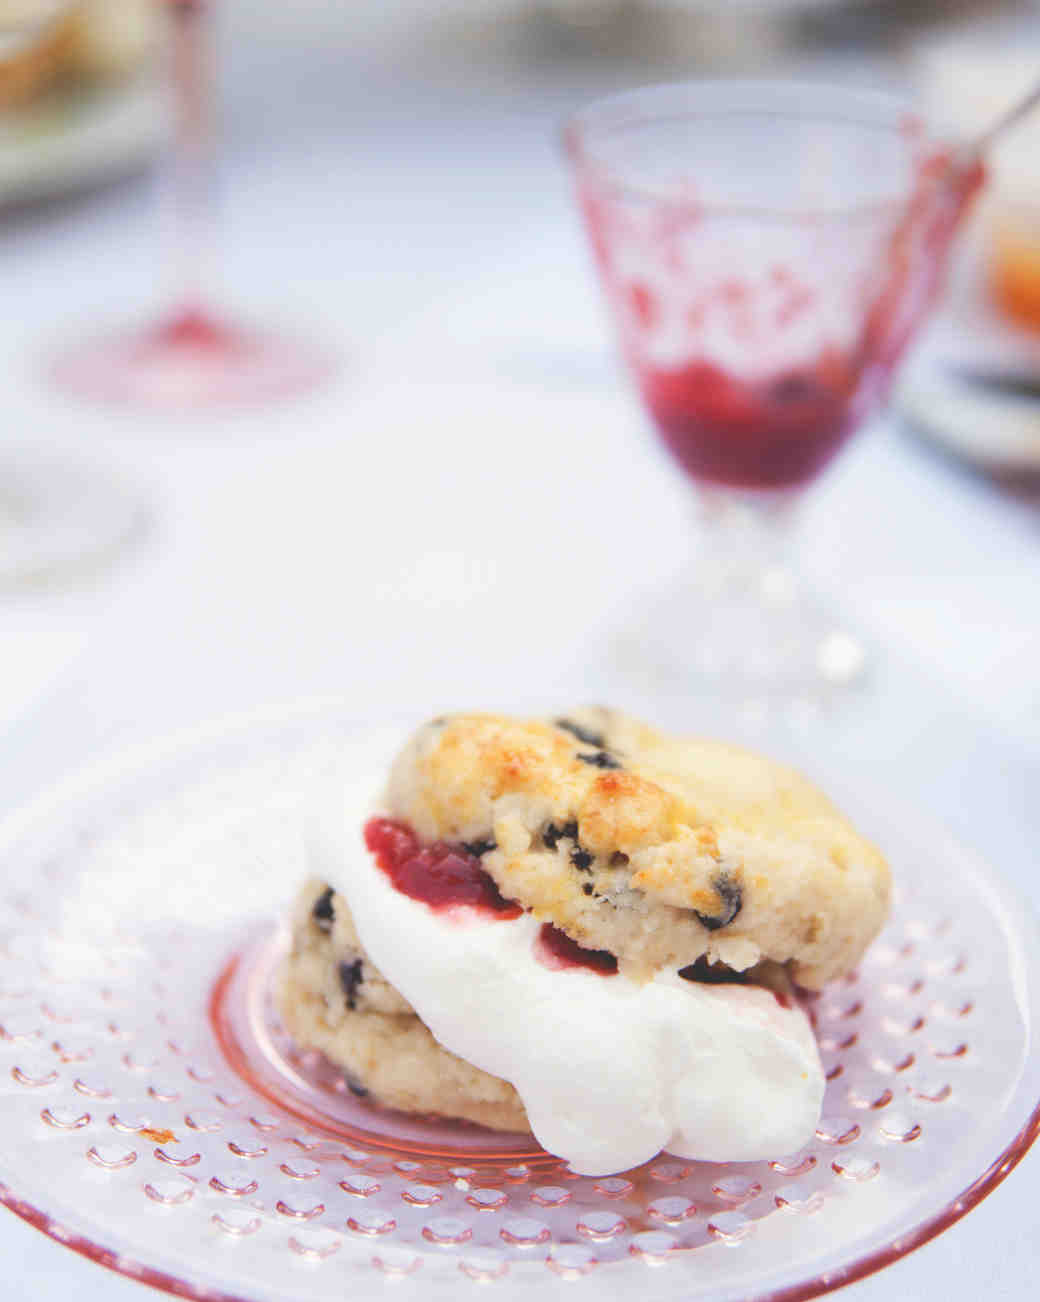 claire-thomas-bridal-shower-scone-jam-and-cream-0215.jpg